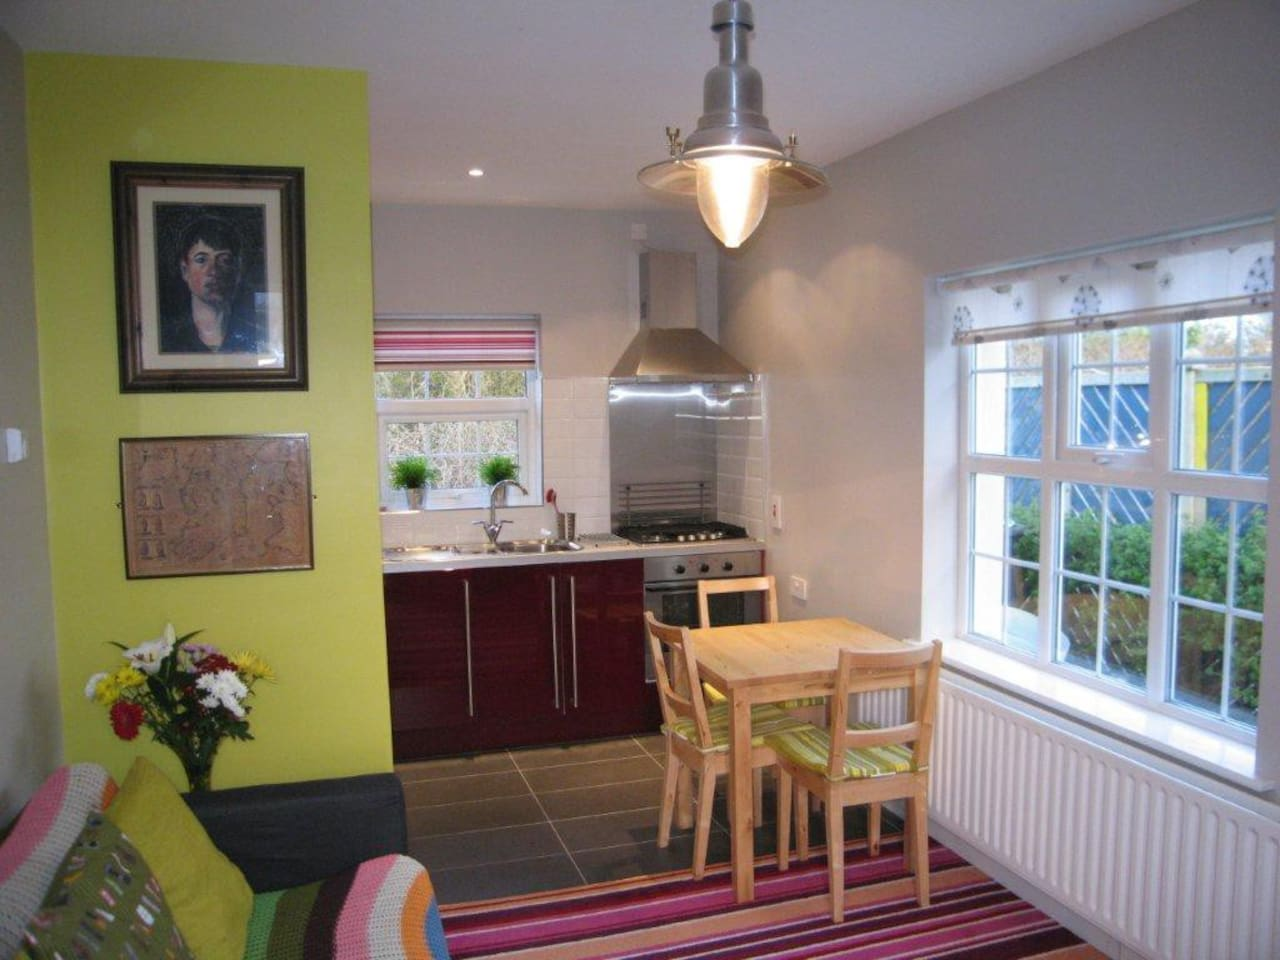 The Living Room Kitchen is cosy and is the perfect place to eat, relax and prepare an evening meal.